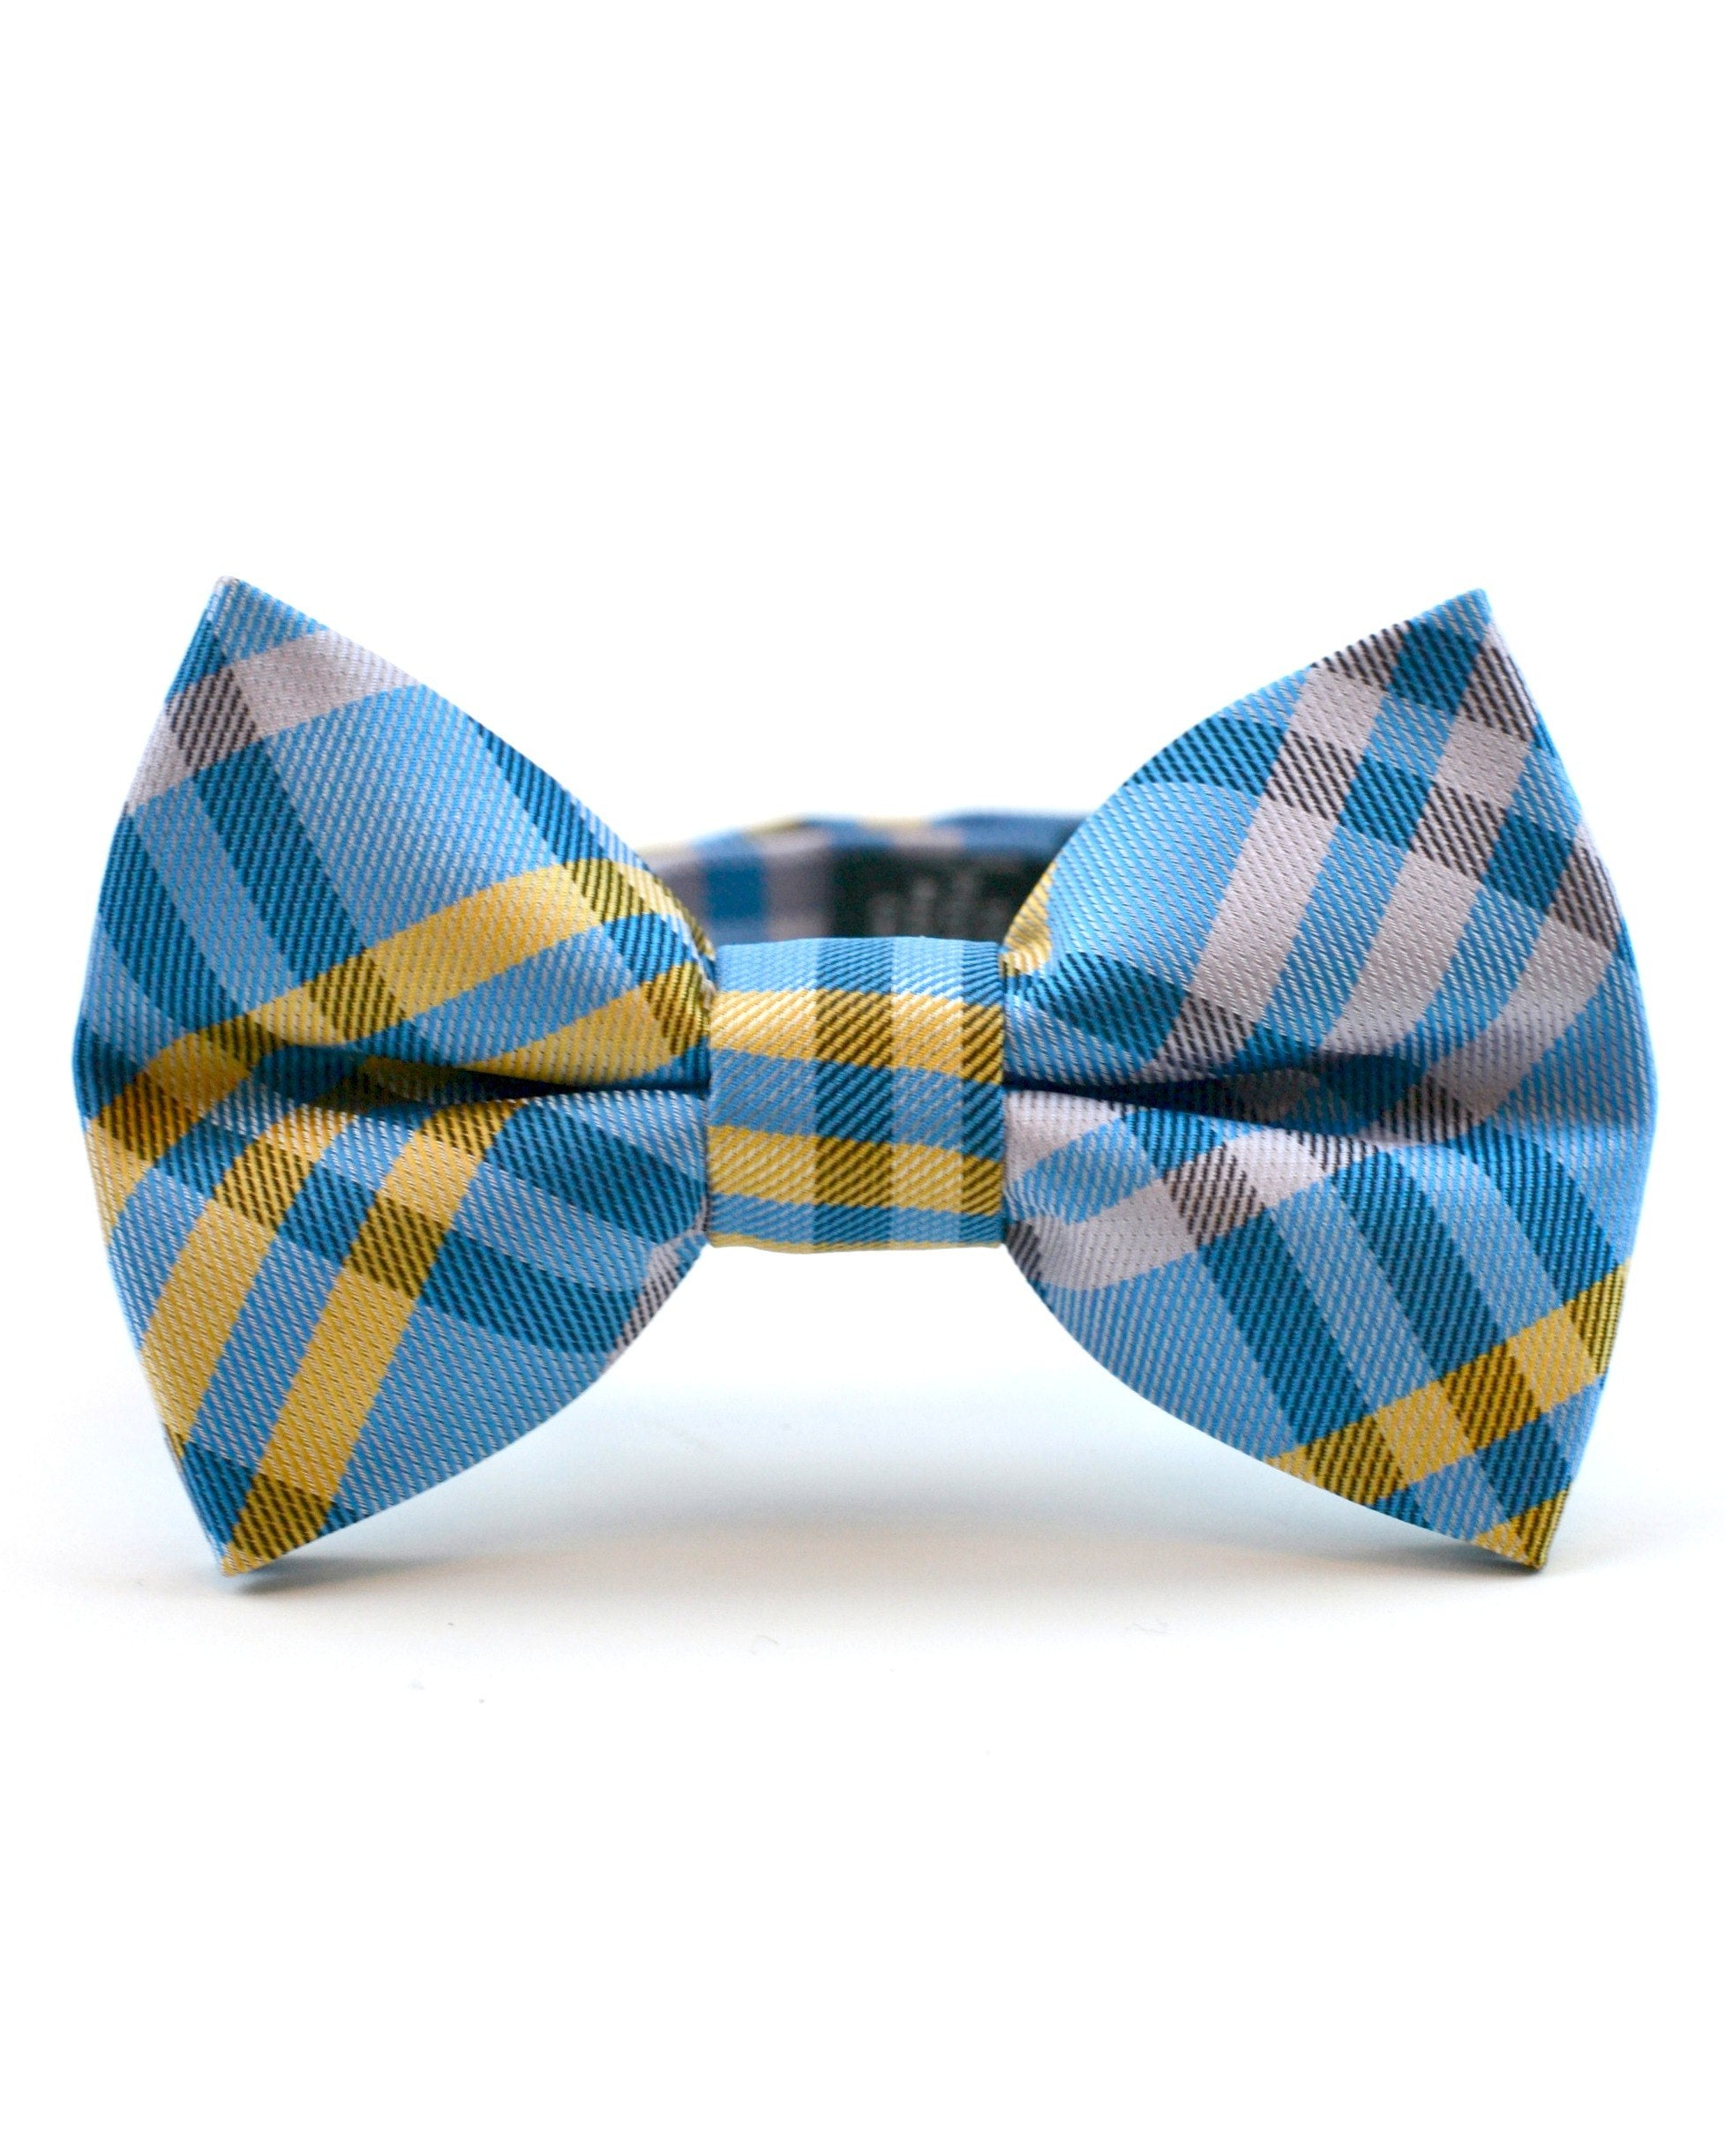 yellow-and-bright-blue-plaid-bow-tie.jpg